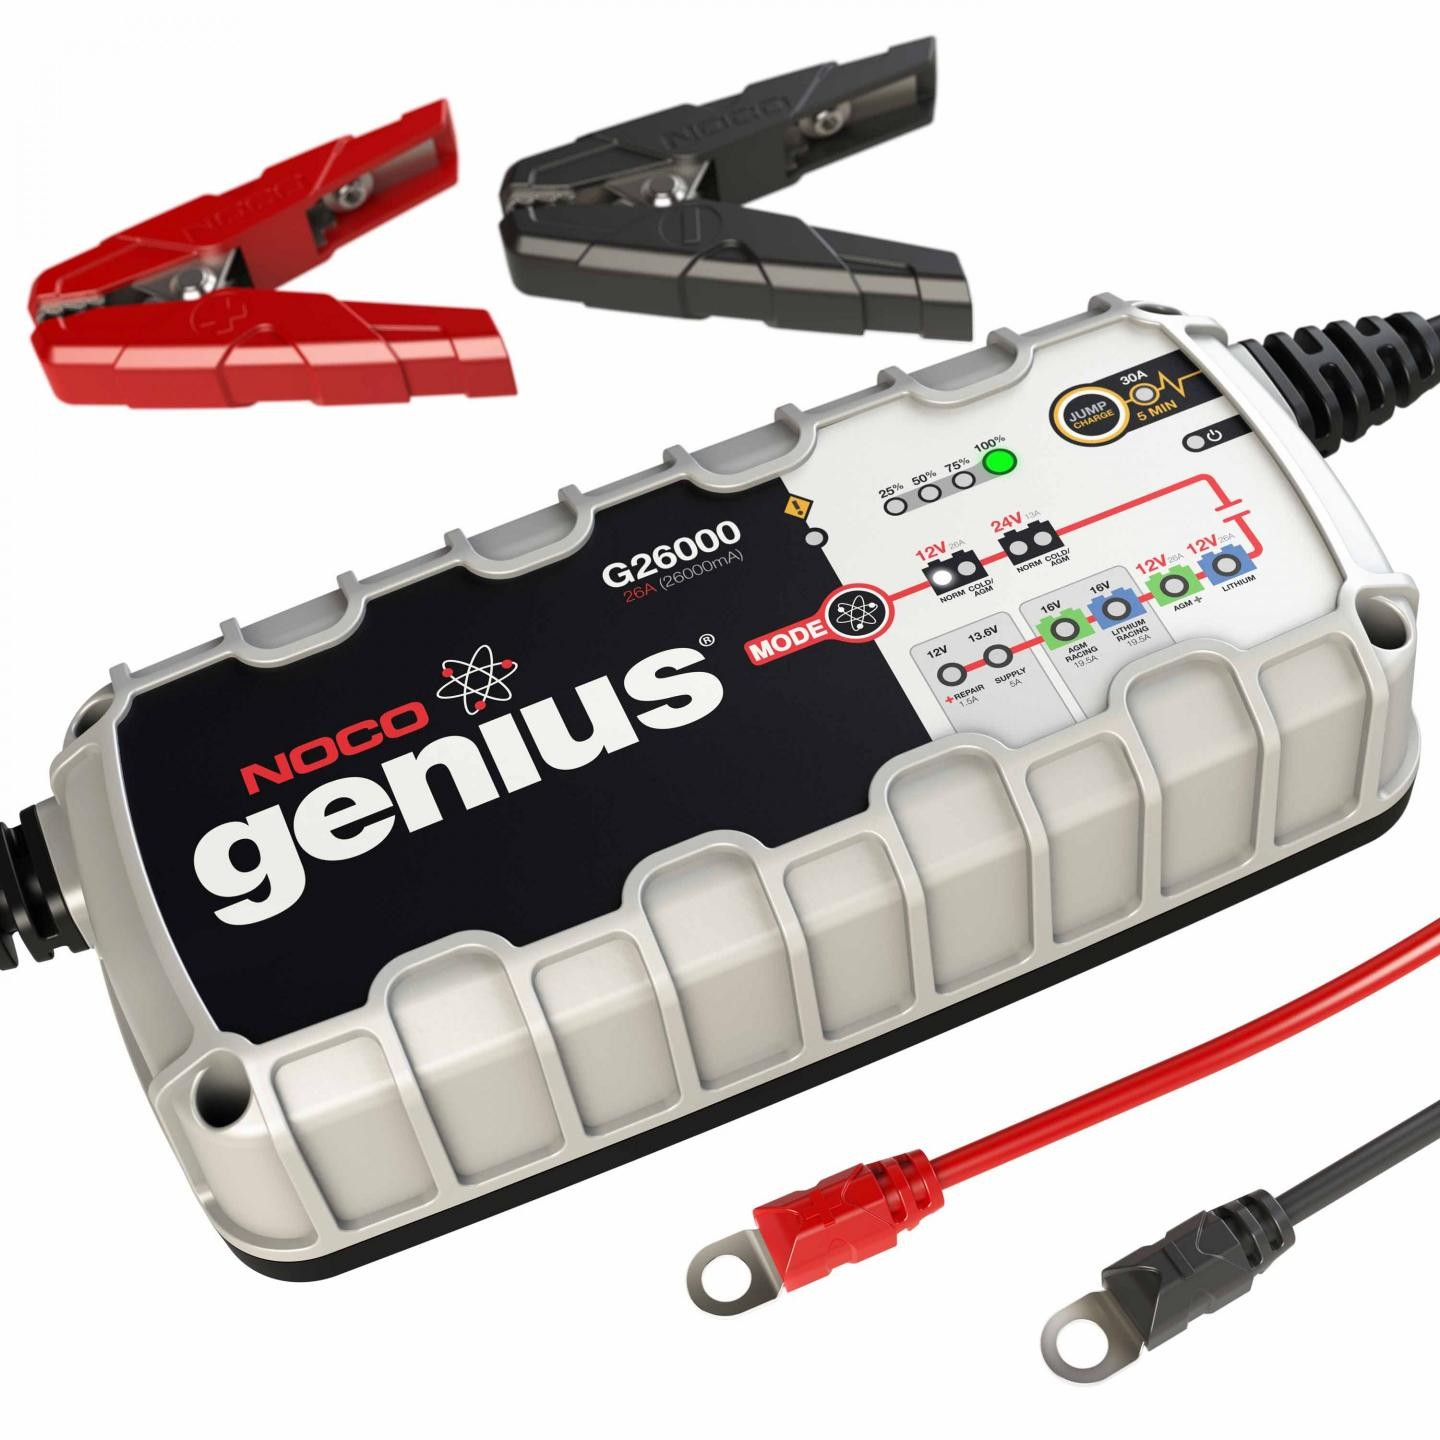 G26000 26 Amp 12 24v Noco Genius Multi Purpose Battery Charger Sealed Lead Acid Dual Step Current Mode